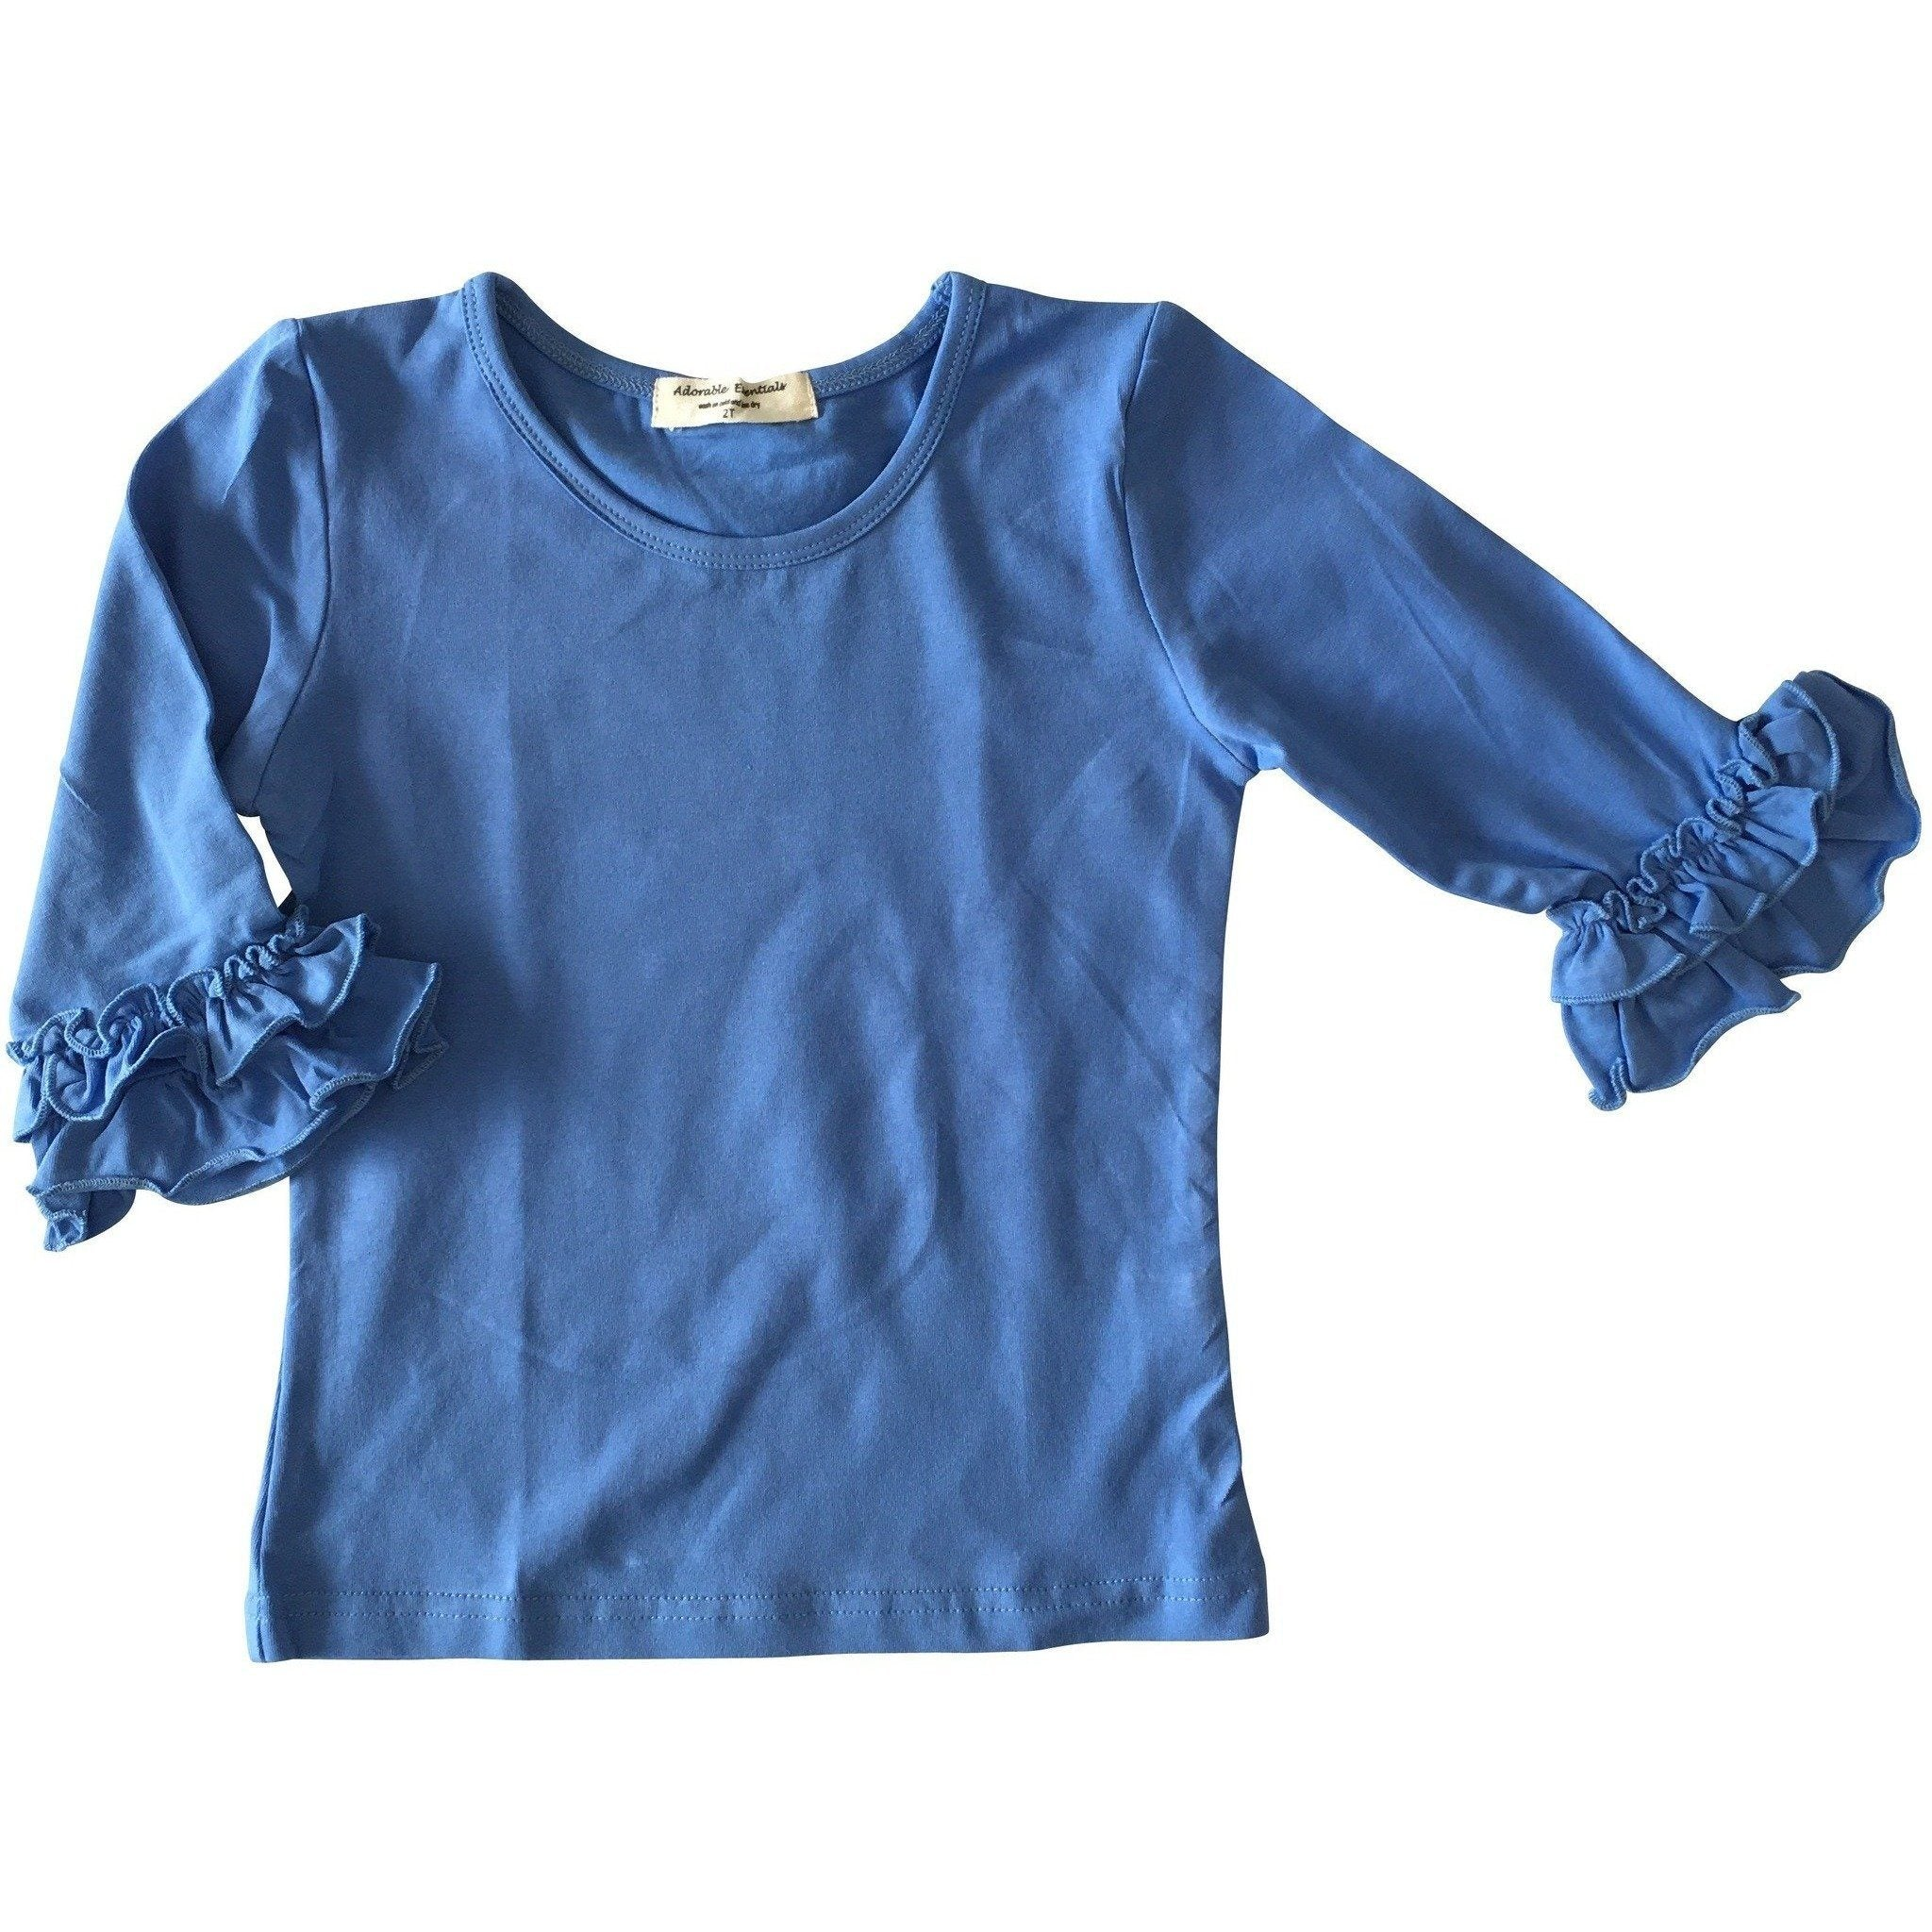 Adorable Essentials, Baby Mid-Sleeve Ruffle Shirts,Baby Tops,Adorable Essentials, LLC